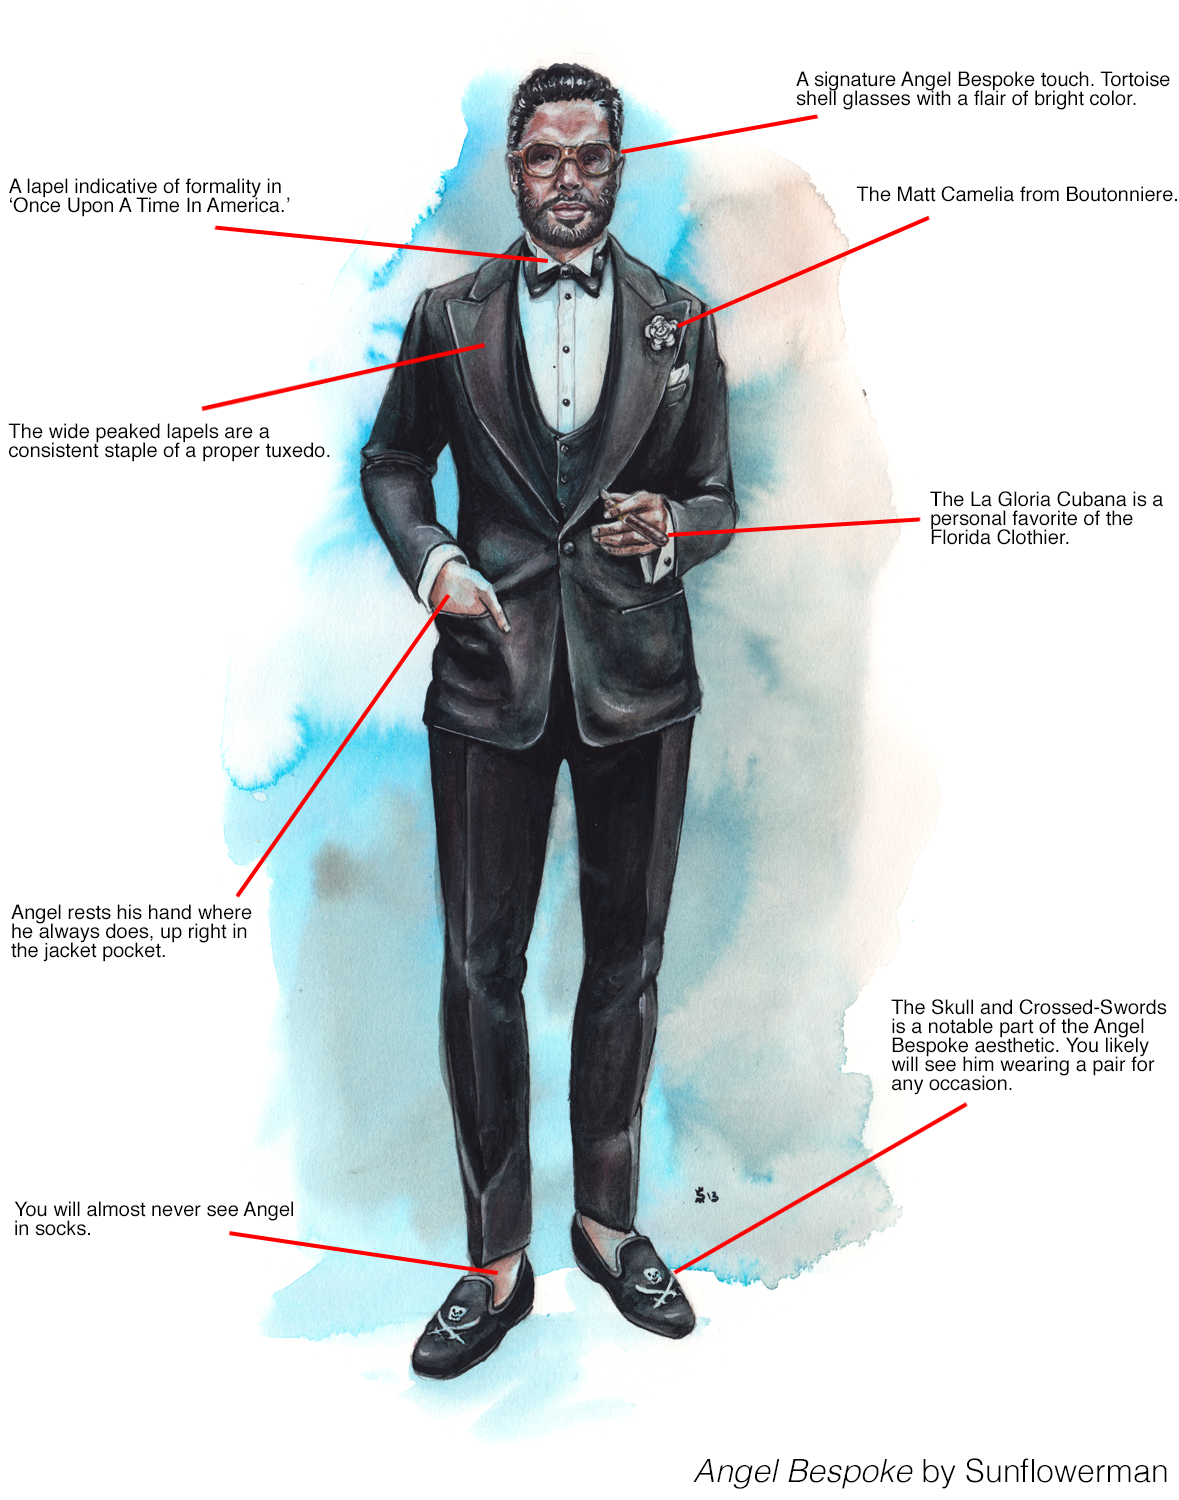 Angel Bespoke Illustration info graphic